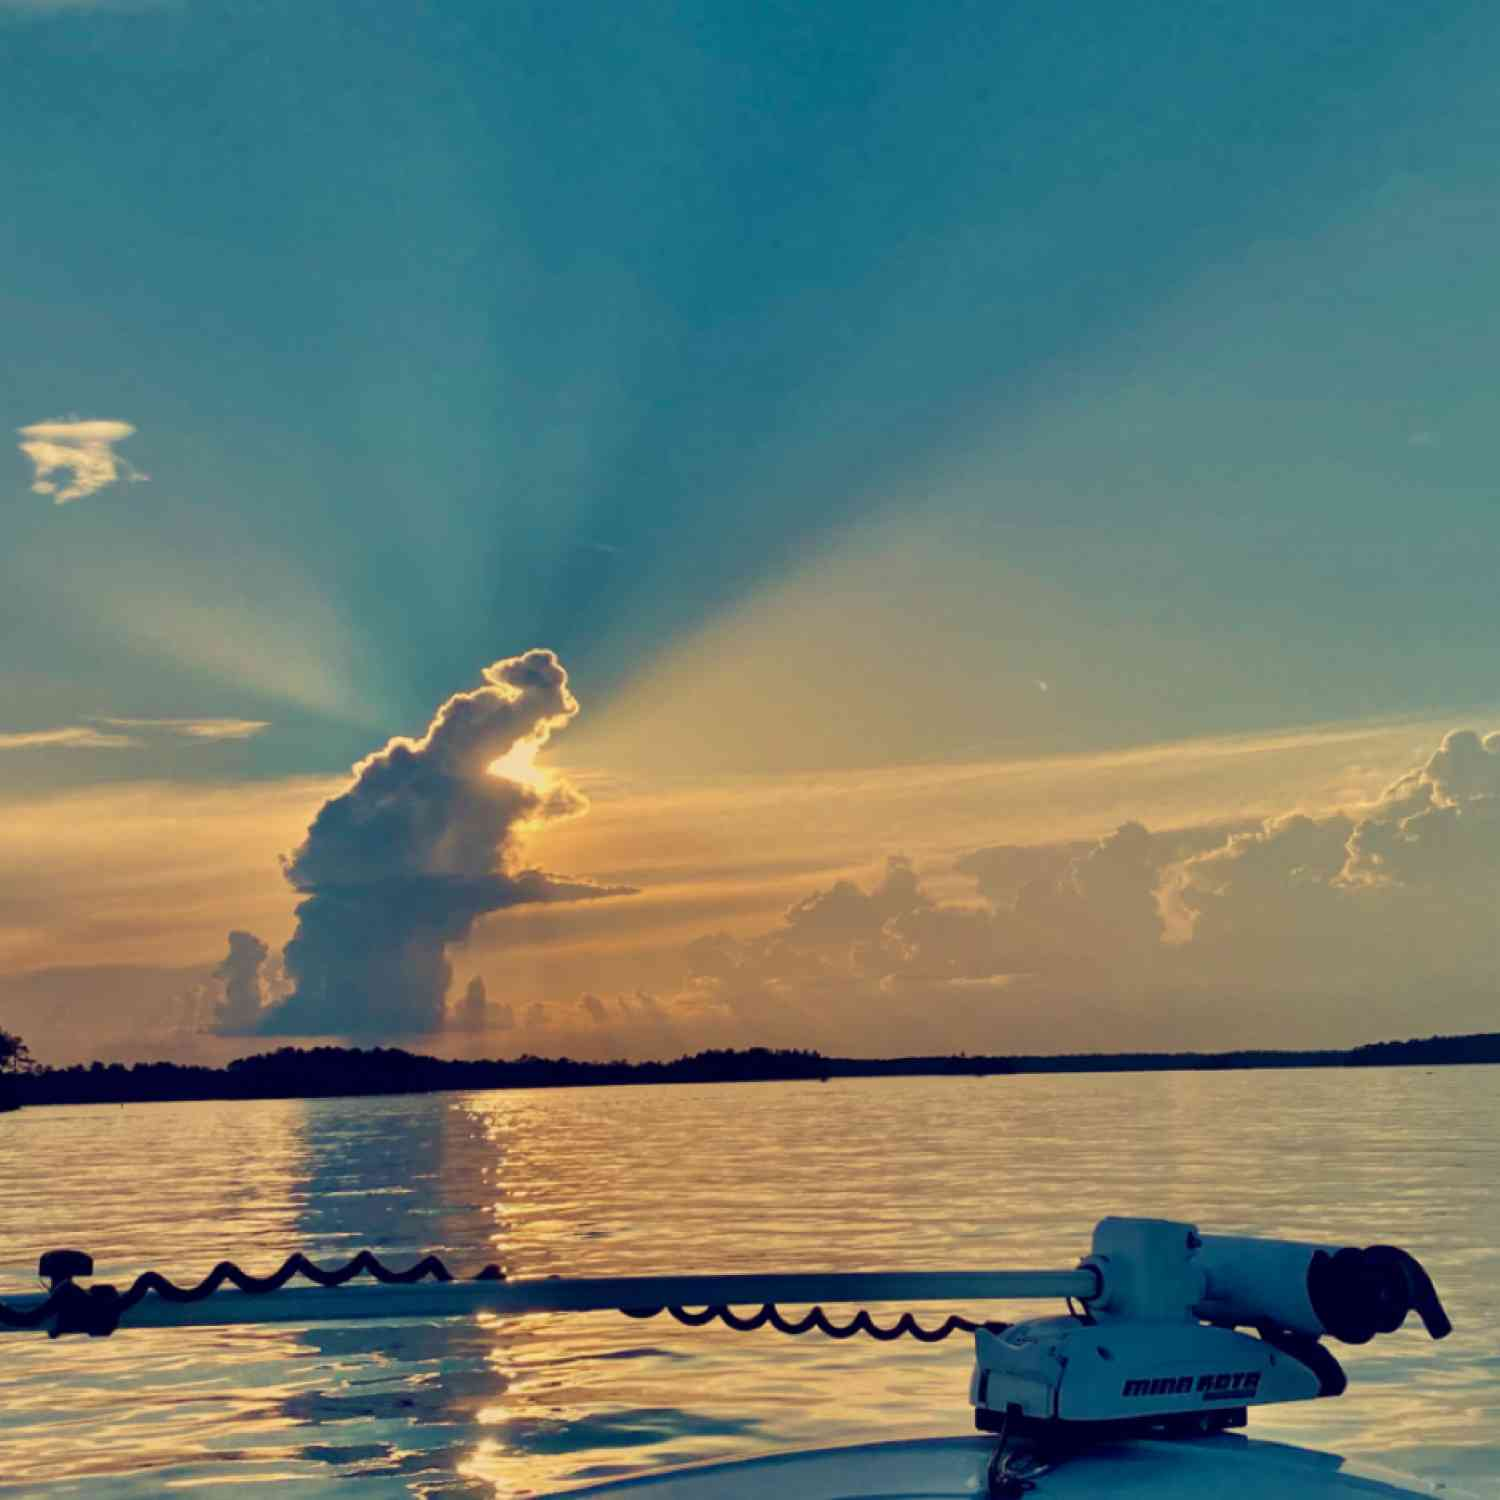 Title: Running from the storm - On board their Sportsman Heritage 231 Center Console - Location: Plum Branch, South Carolina. Participating in the Photo Contest #SportsmanJune2020